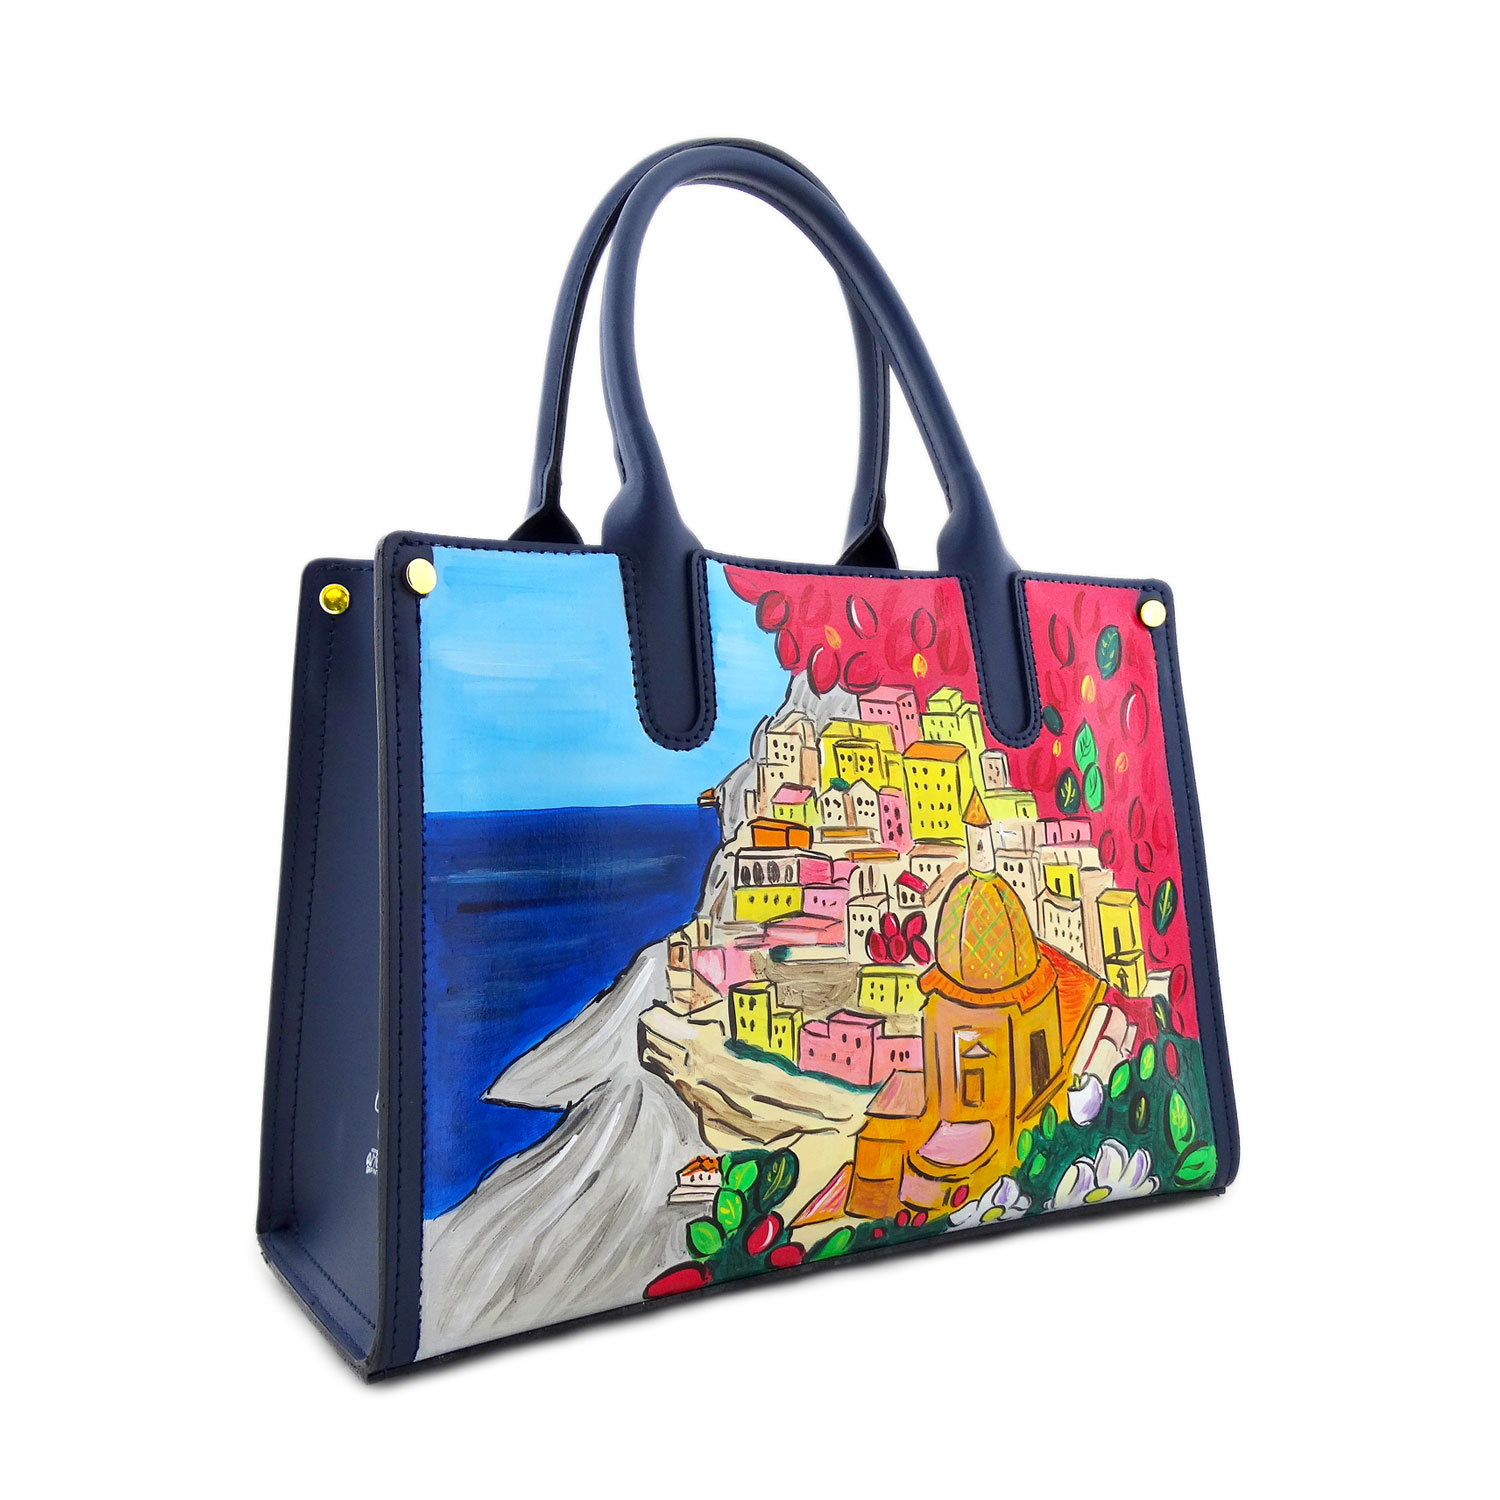 Hand painted bag - Positano